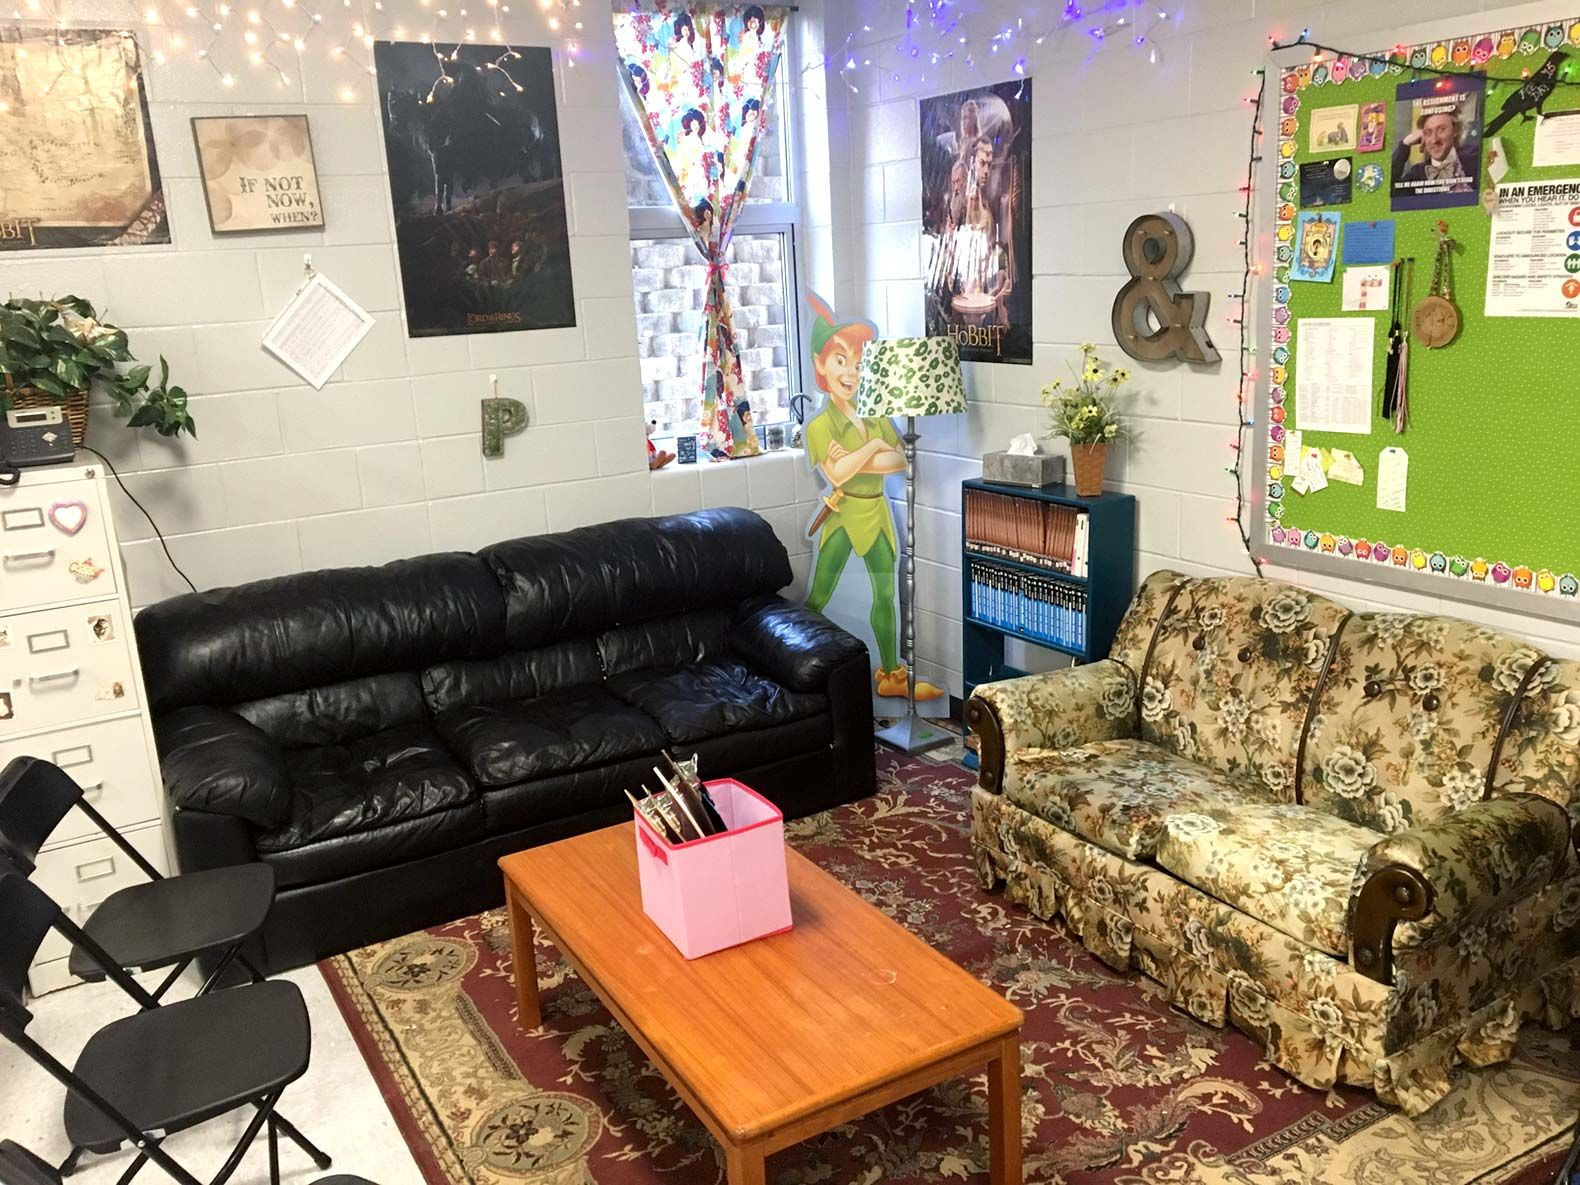 For ninth-grade teacher Emily Polak, flexible seating is part of effective classroom management.